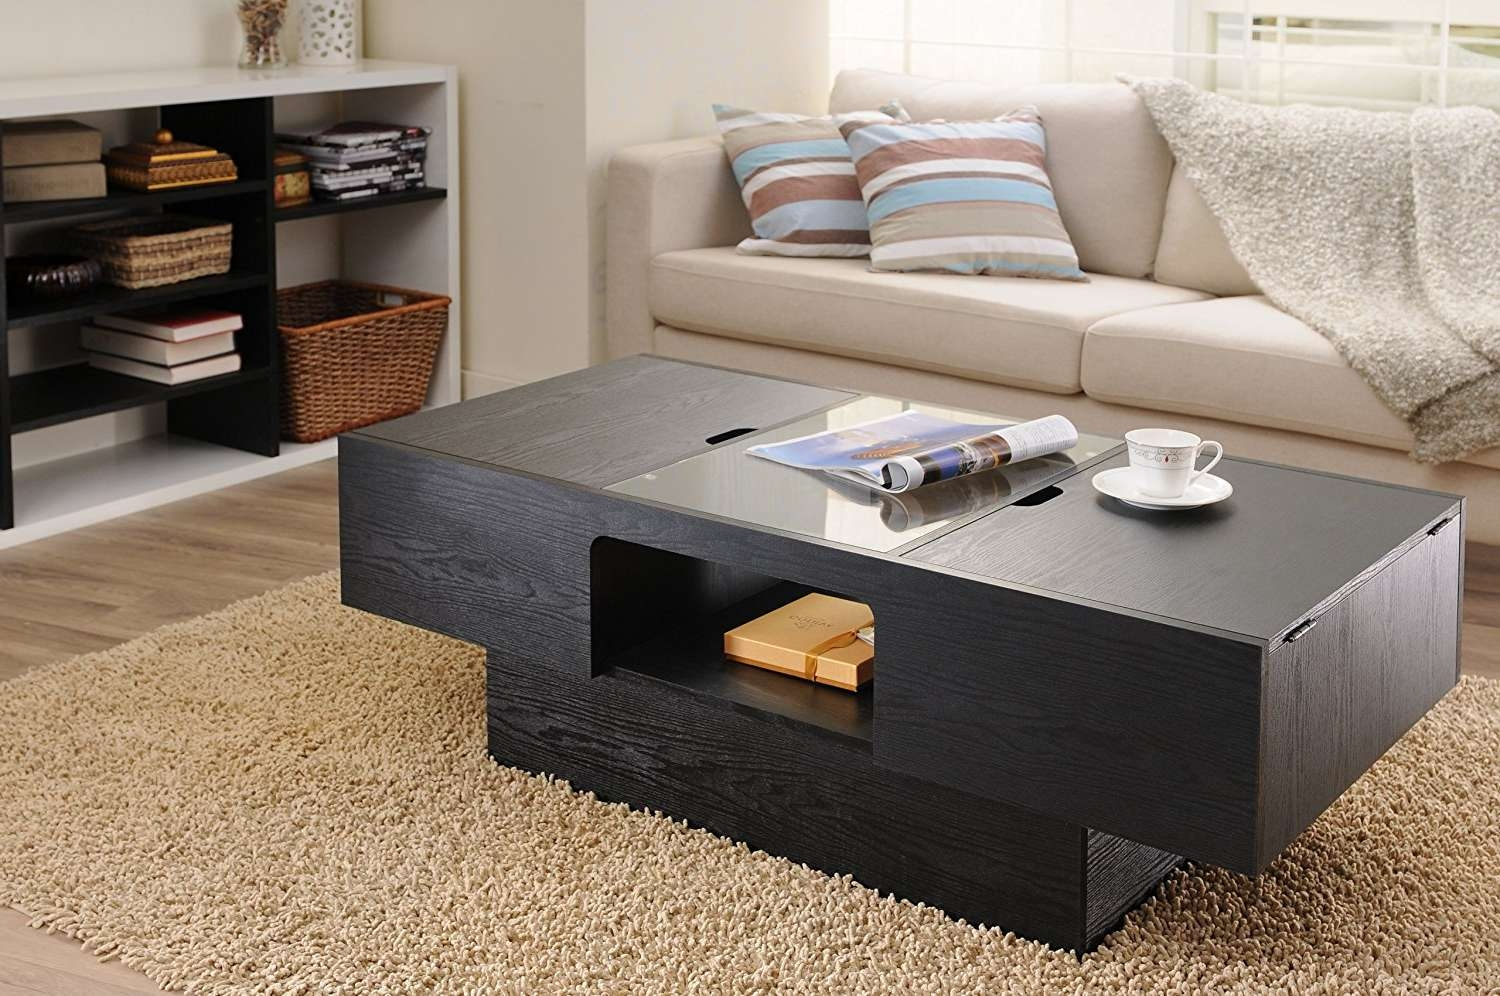 Coffee Tables : Beautiful Storage Small Storage Table Nesting Pertaining To Popular Black Coffee Tables With Storage (View 5 of 20)